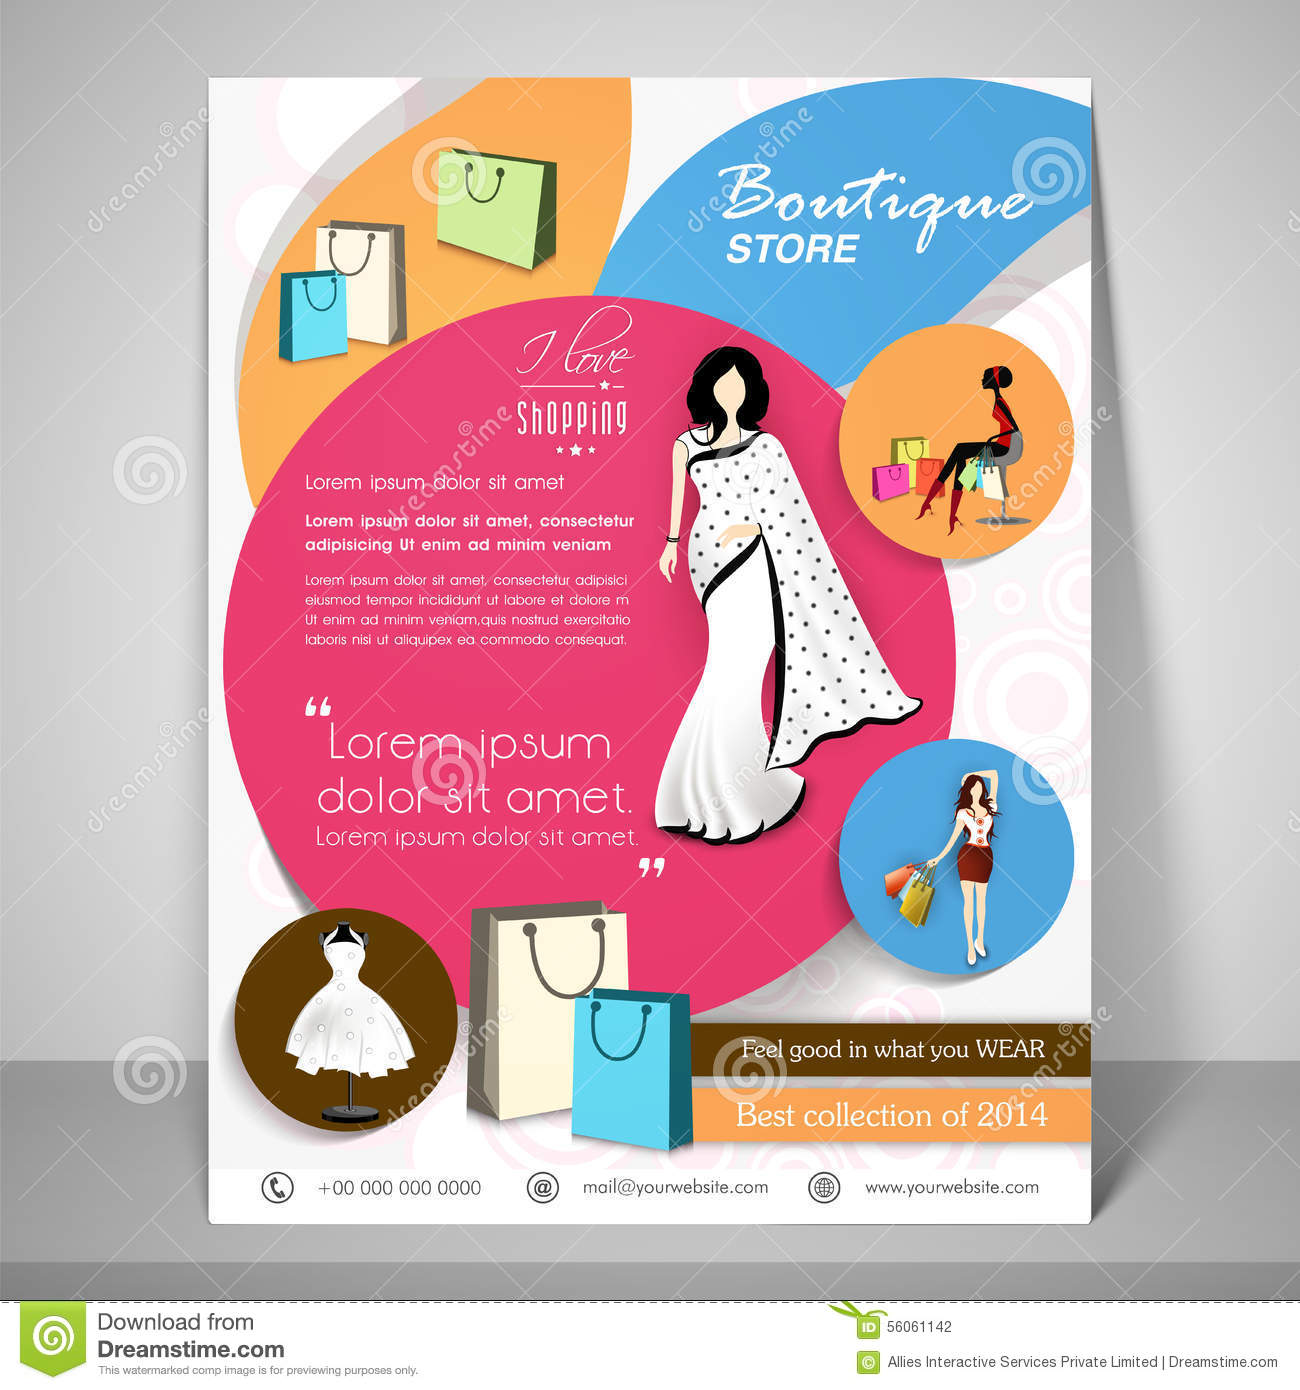 Store Banne Boutique Boutique Store Template Banner Or Flyer Design Stock